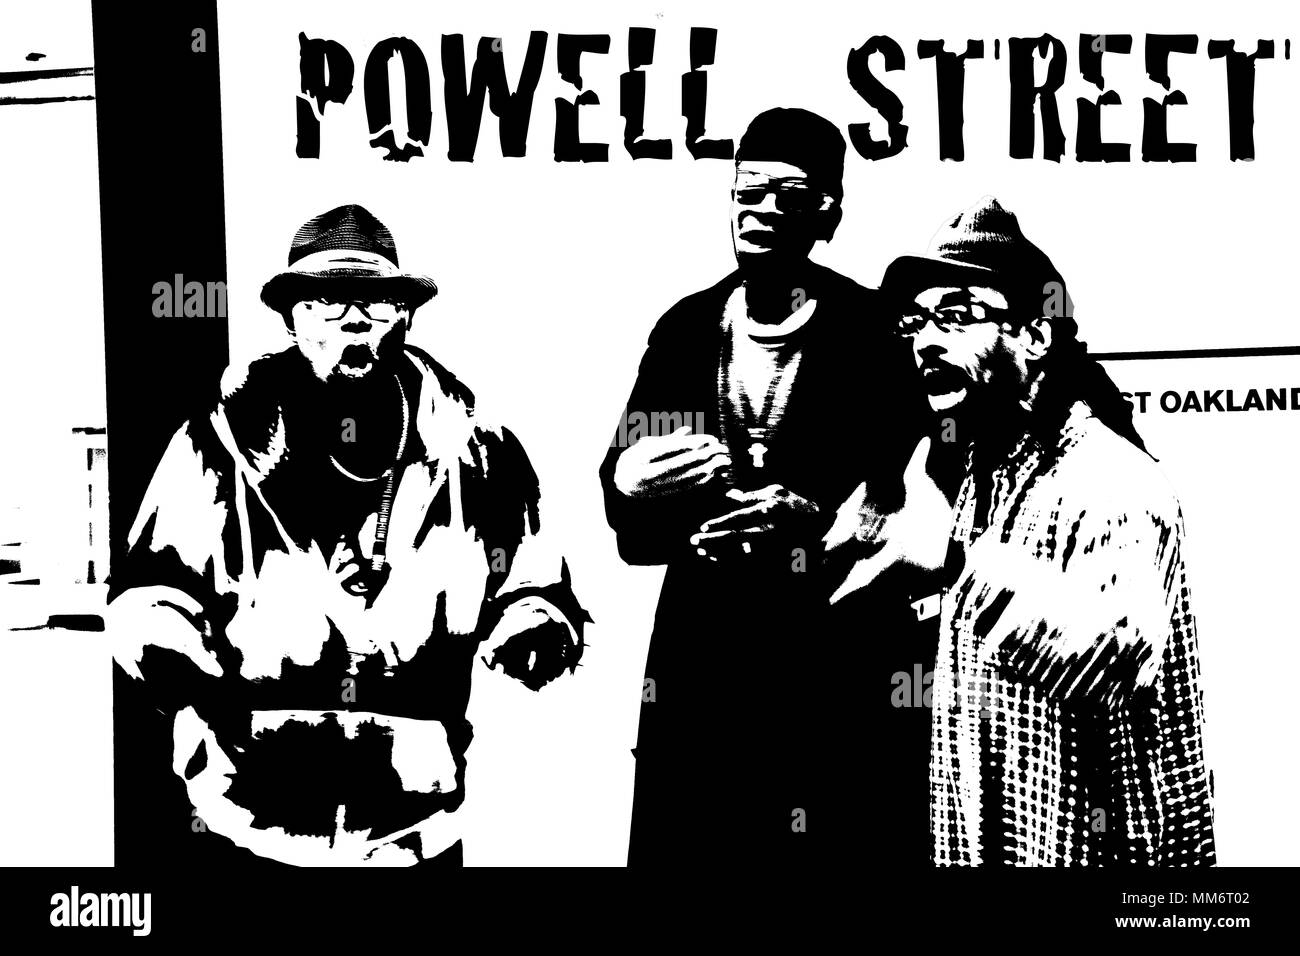 Gospel trio performing at the Powell Street BART station in San Francisco. Photoshop threshold manipulation. - Stock Image